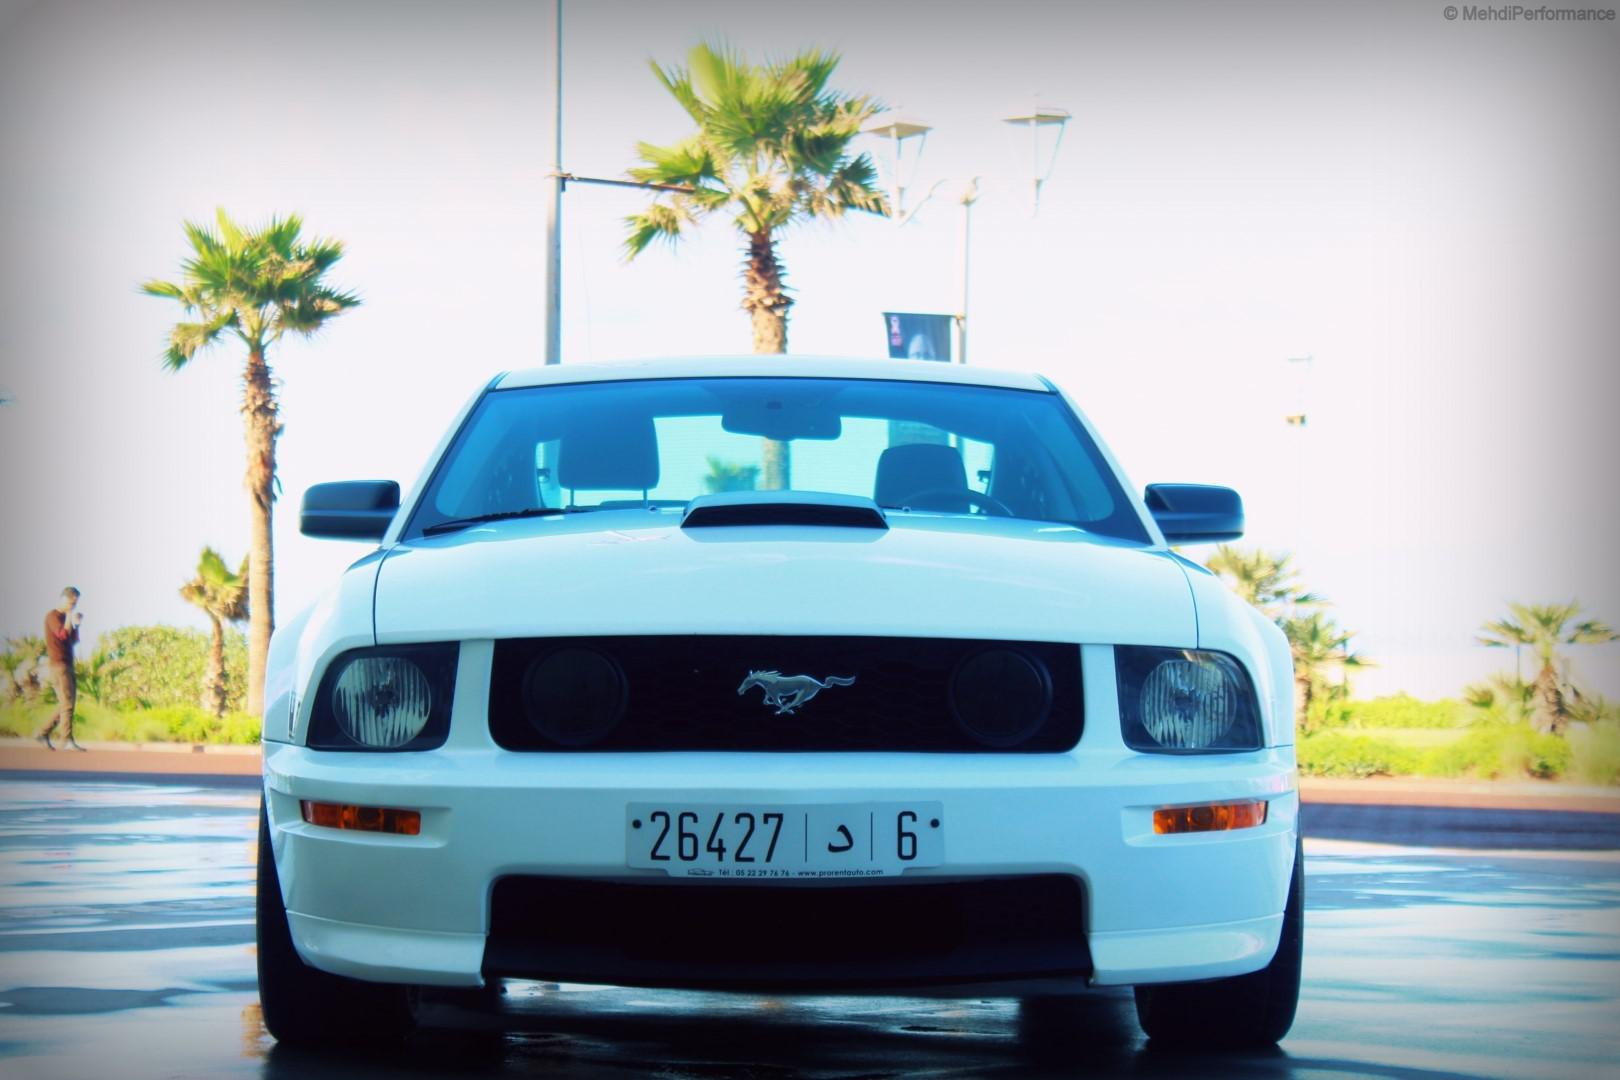 serie-speciale-au-maroc-ford-mustang-gt-v8-4-6l-california-special-manuelle-458-27.jpg